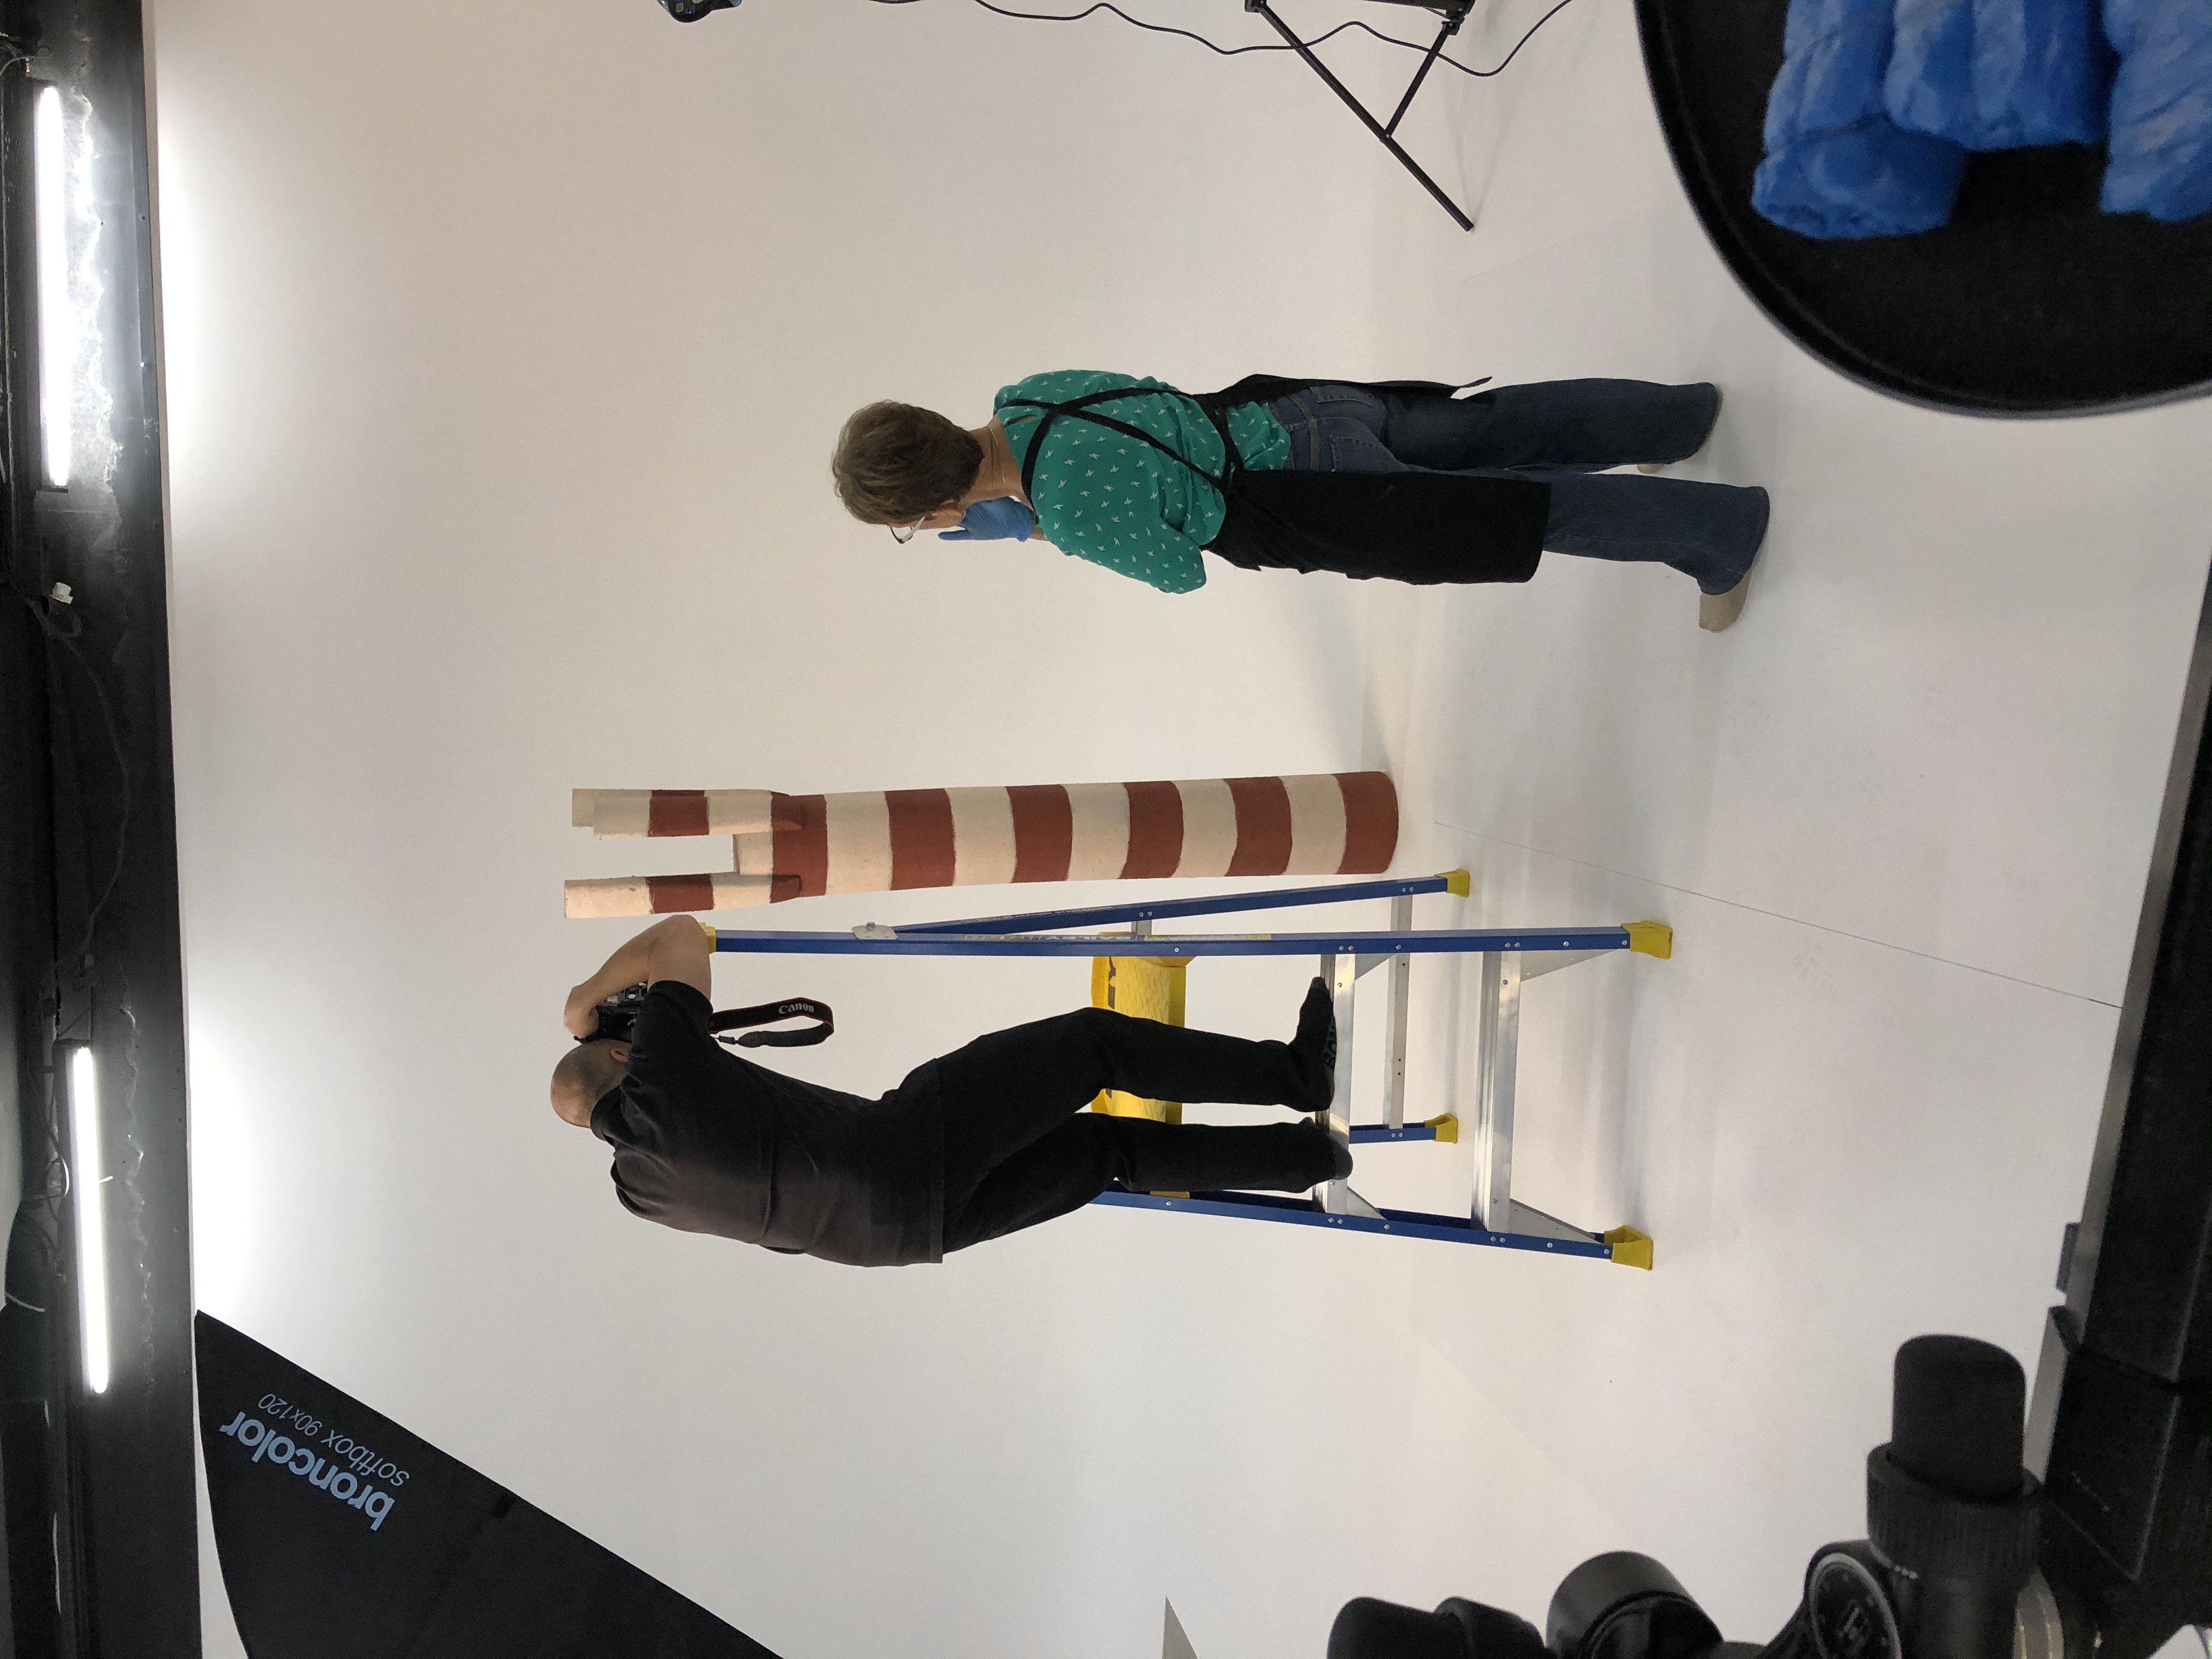 A man stands on a ladder photographing a hand-carved work in the shape of an upturned tree. A woman wearing latex gloves and an apron stands to the side. Various photographic equipment can be seen around the edges of the image. Both are wearing socks.